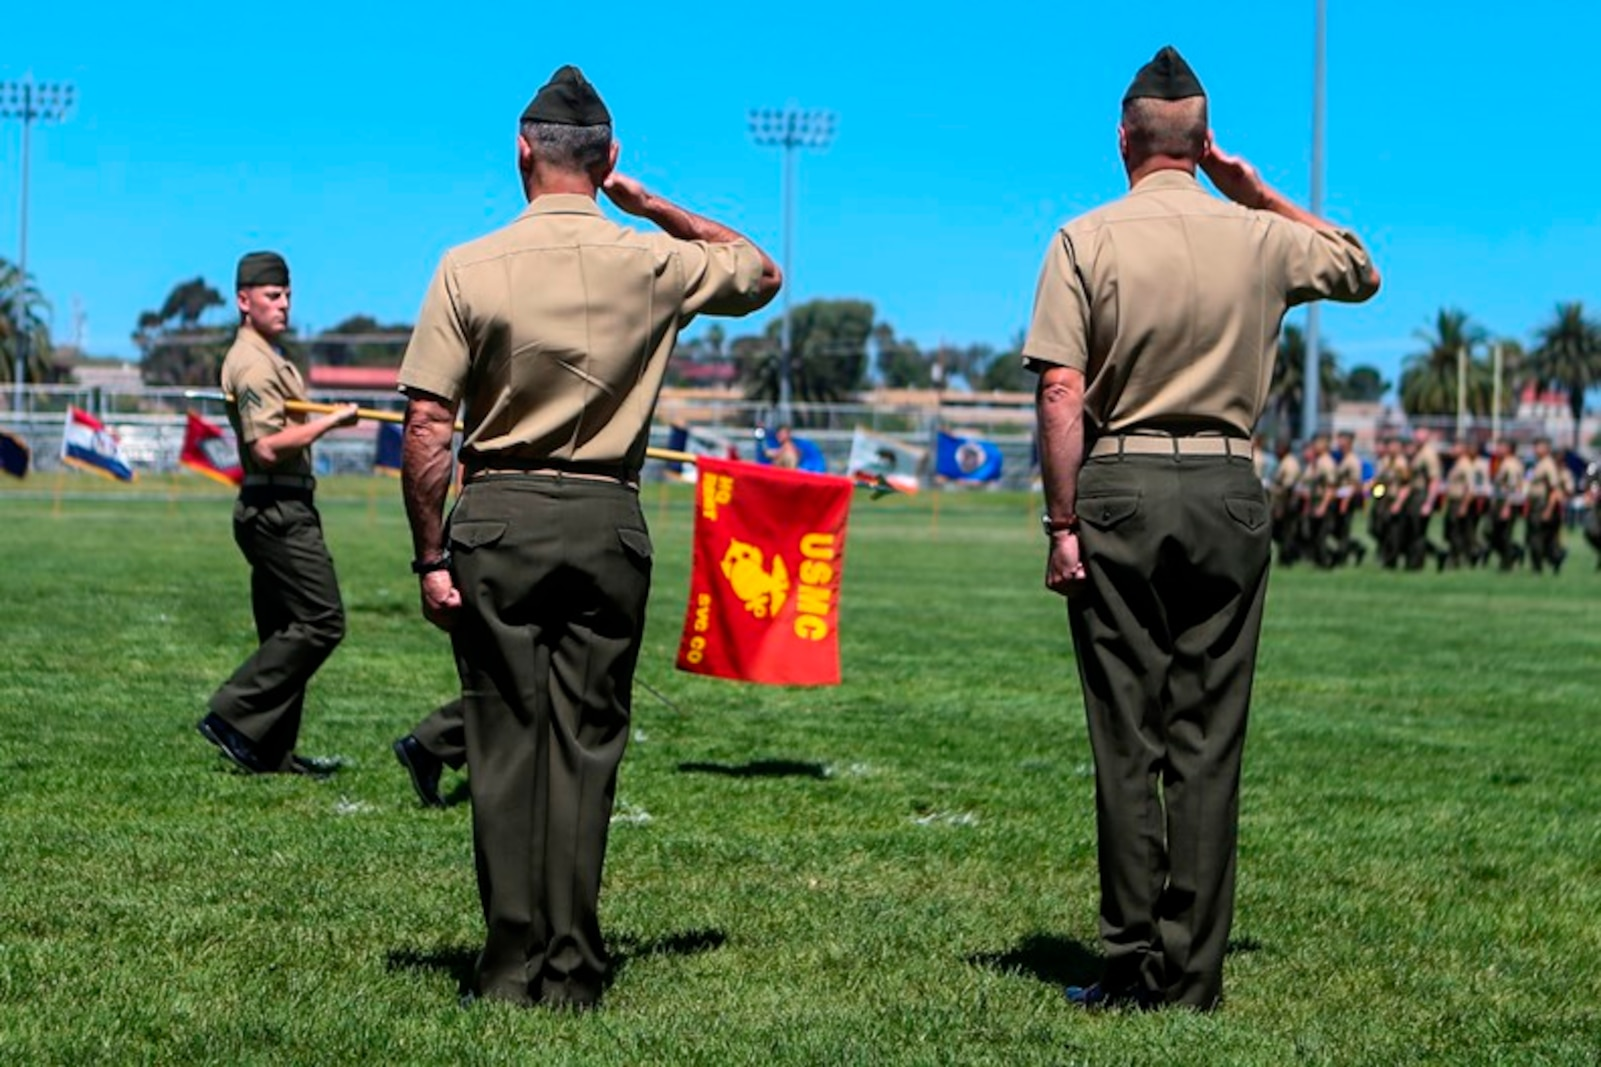 U.S. Marine Cols. Phillip N. Frietze (left) and James R. Hensien (right) return a salute during the pass in review at the 1st Marine Logistics Group Headquarters Regiment Change of Command on Camp Pendleton, Calif., June 15, 2017. The ceremony included marching of the colors, passing of the regimental colors, presenting Frietze his award and closing remarks from the oncoming and off going personnel as well as the 1st MLG Commanding General, Brig. Gen. David A. Ottignon. (U.S. Marine Corps photo by Lance Cpl. Joseph Sorci)